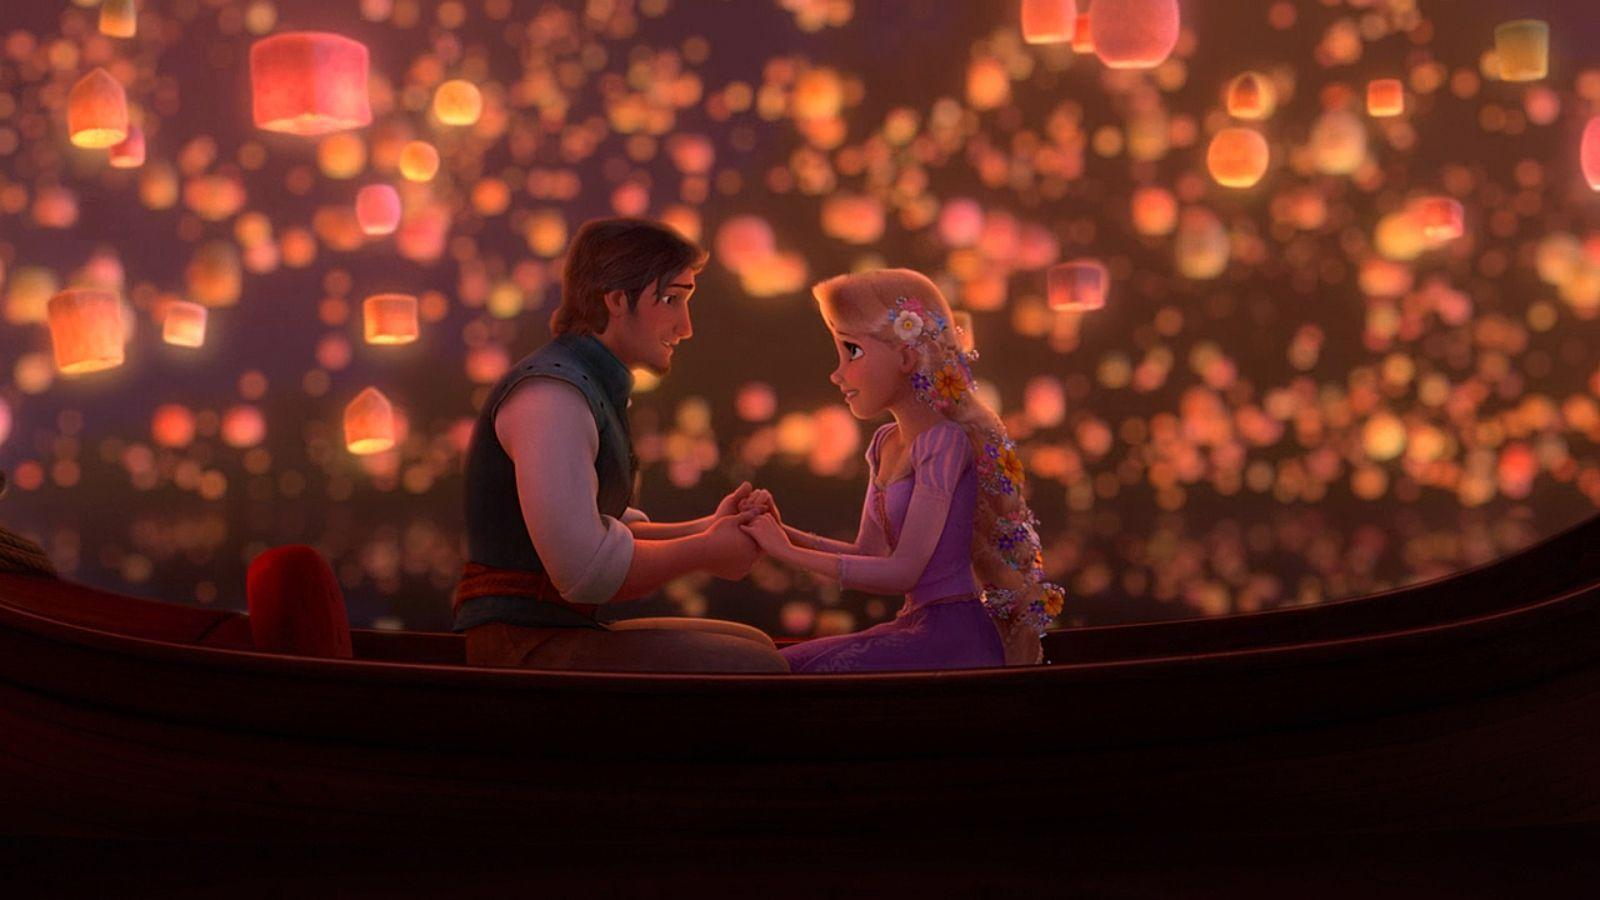 Wallpapers For Tangled Hd Romantic